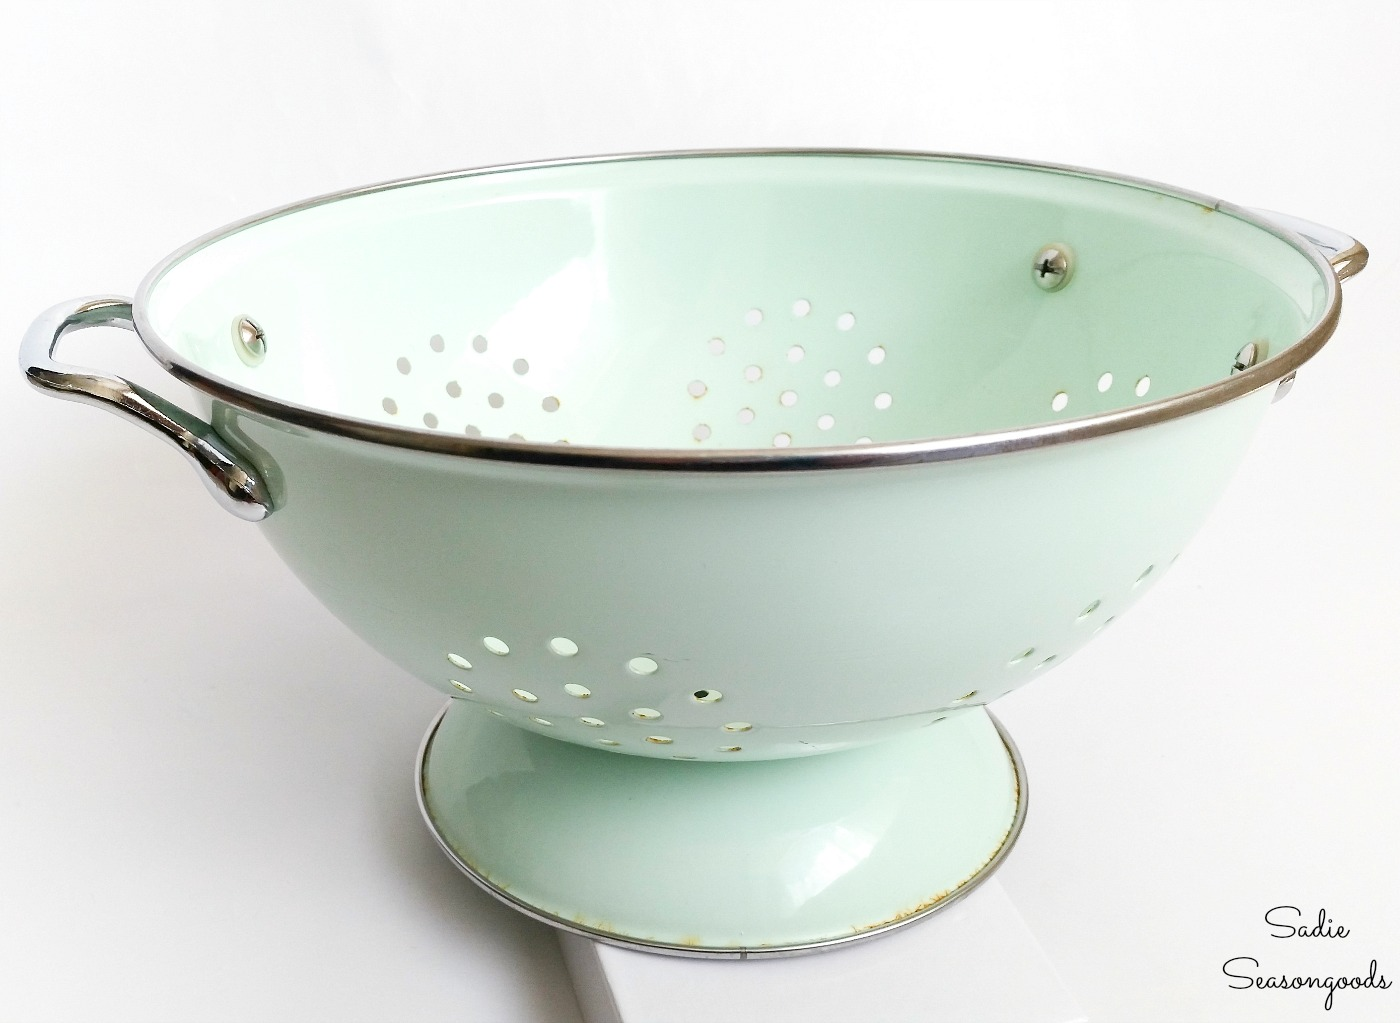 Enamel colander to be upcycled into a hanging basket and planter